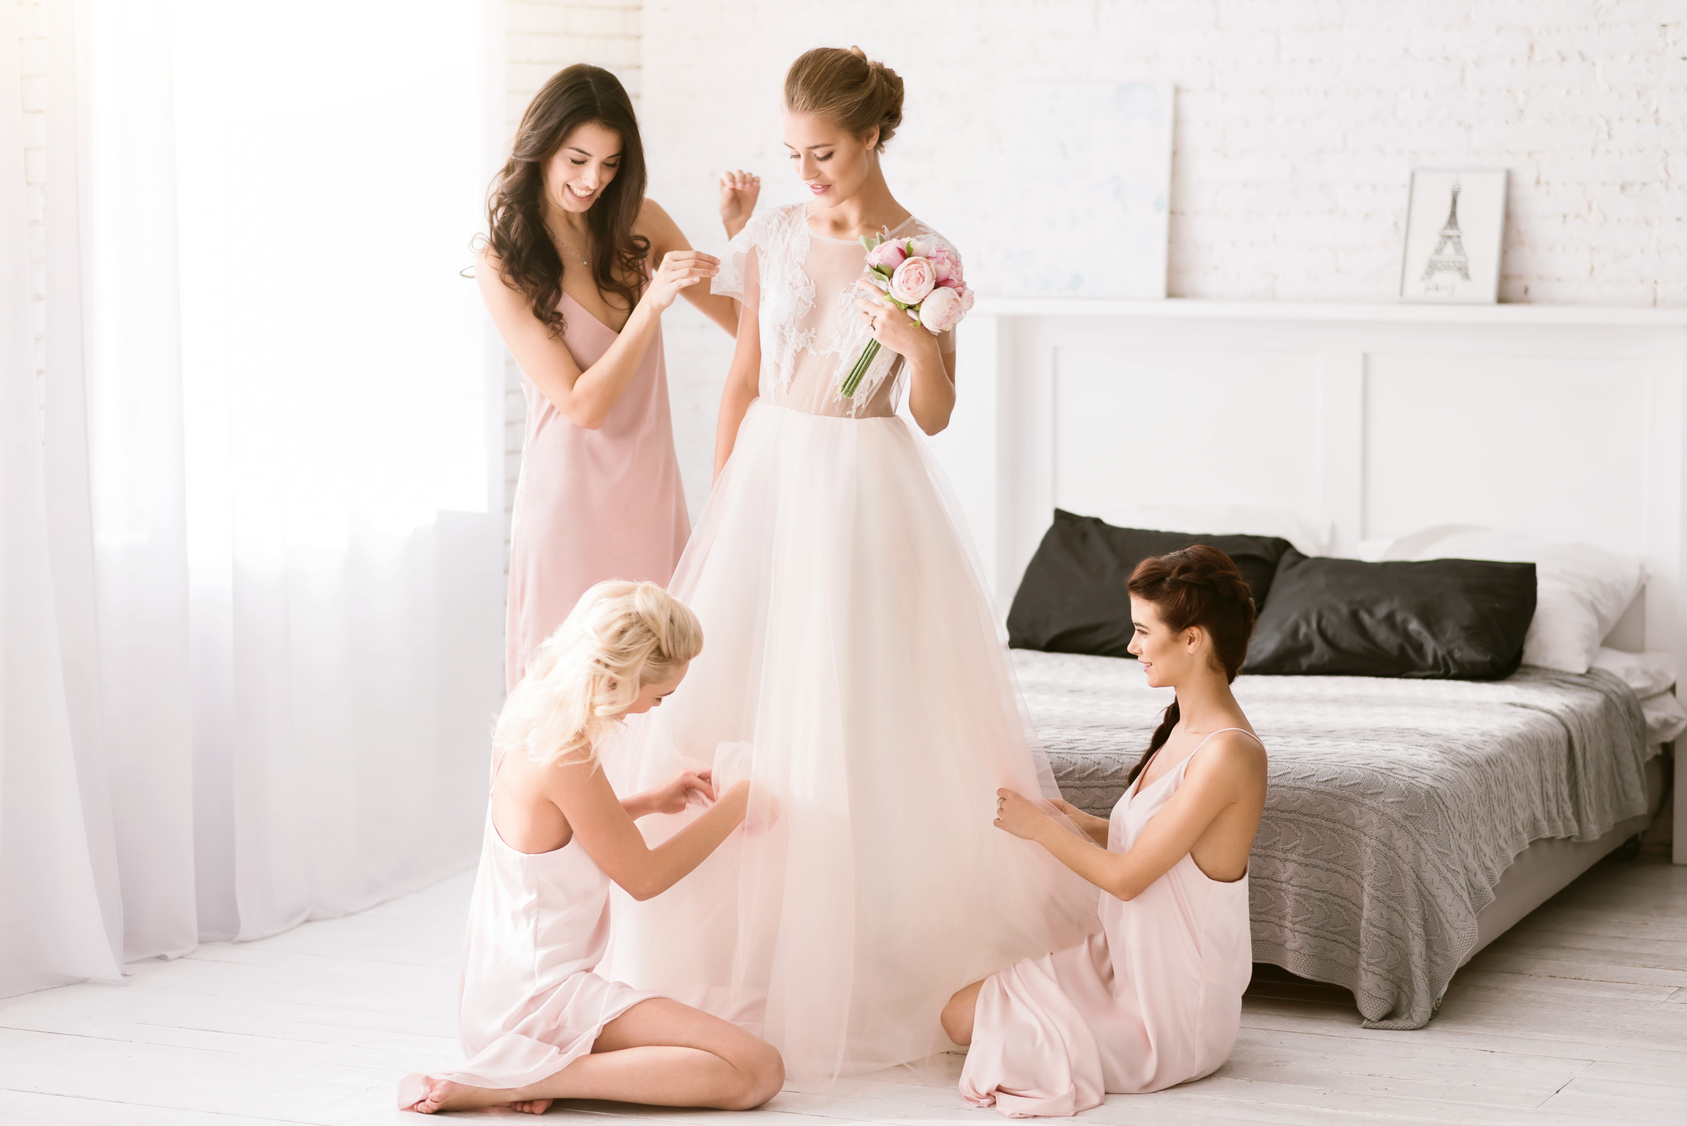 Delighted bridesmaids helping the bride to get ready